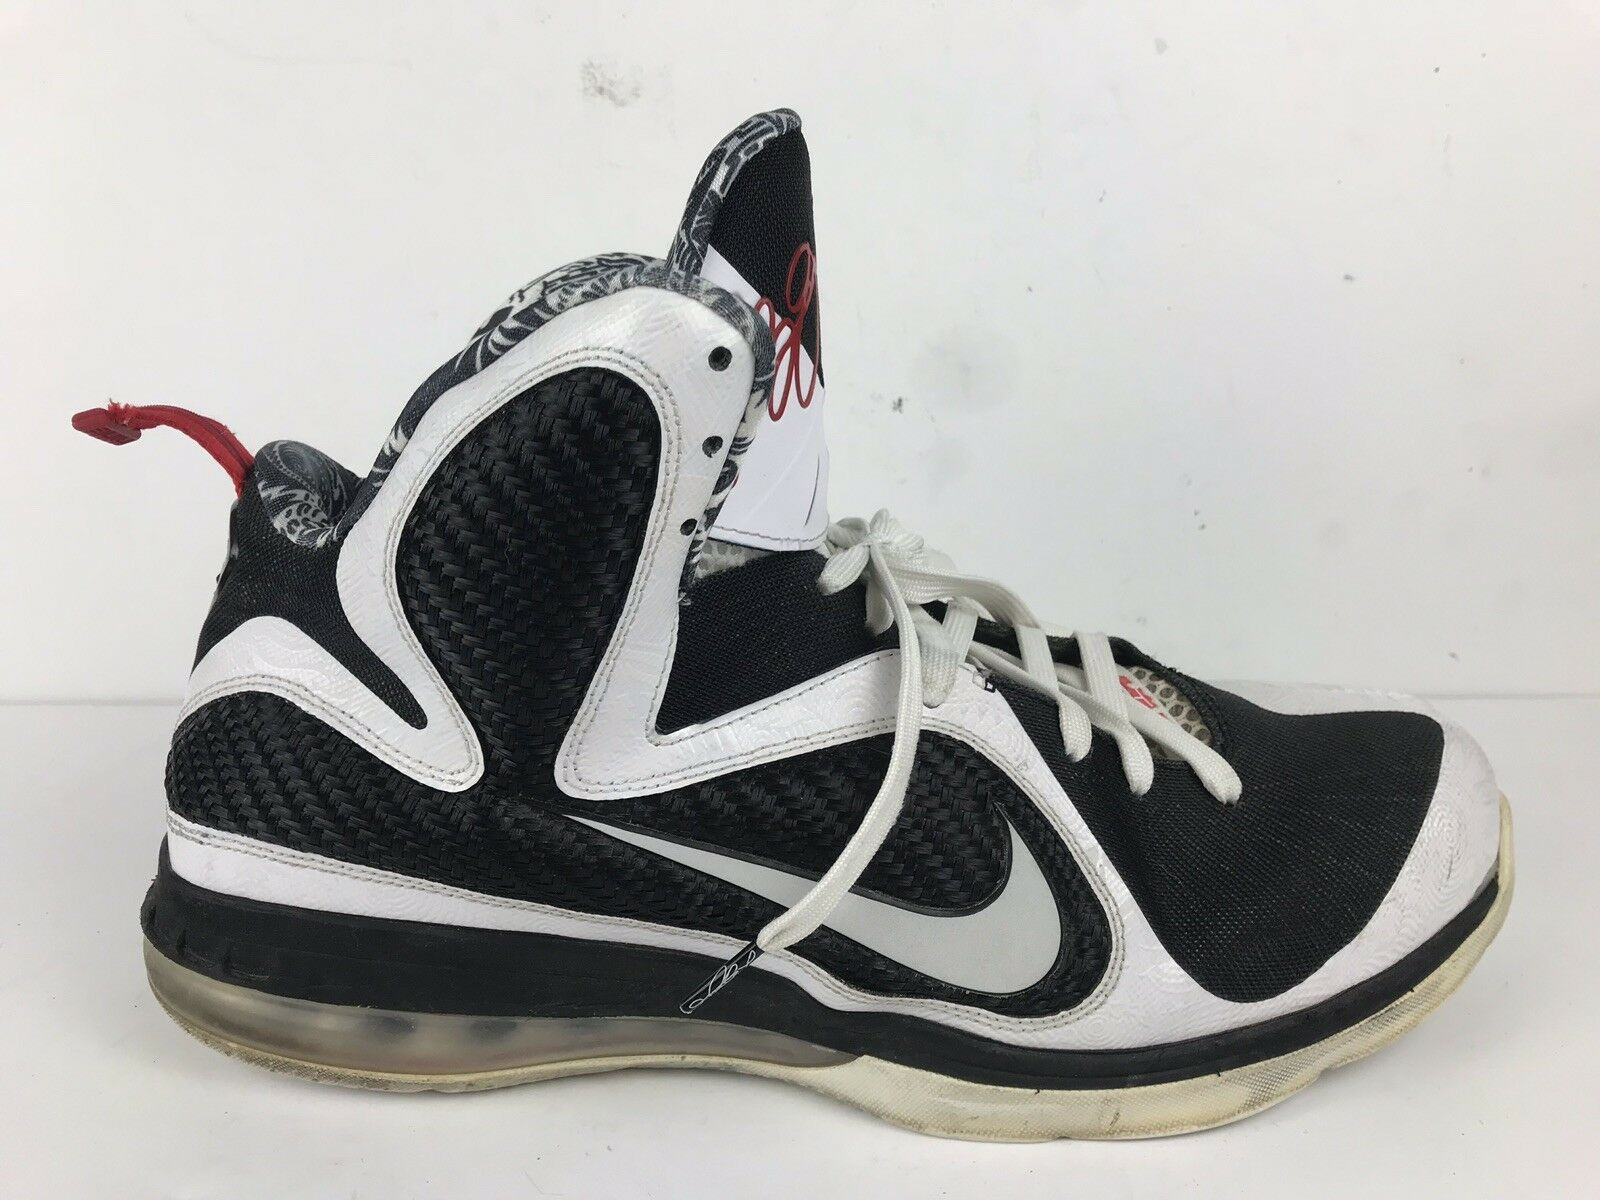 Men's Nike Lebron Black/White/Red 9 Freegums Size 13 Black/White/Red Lebron Pre-Owned b33b1b